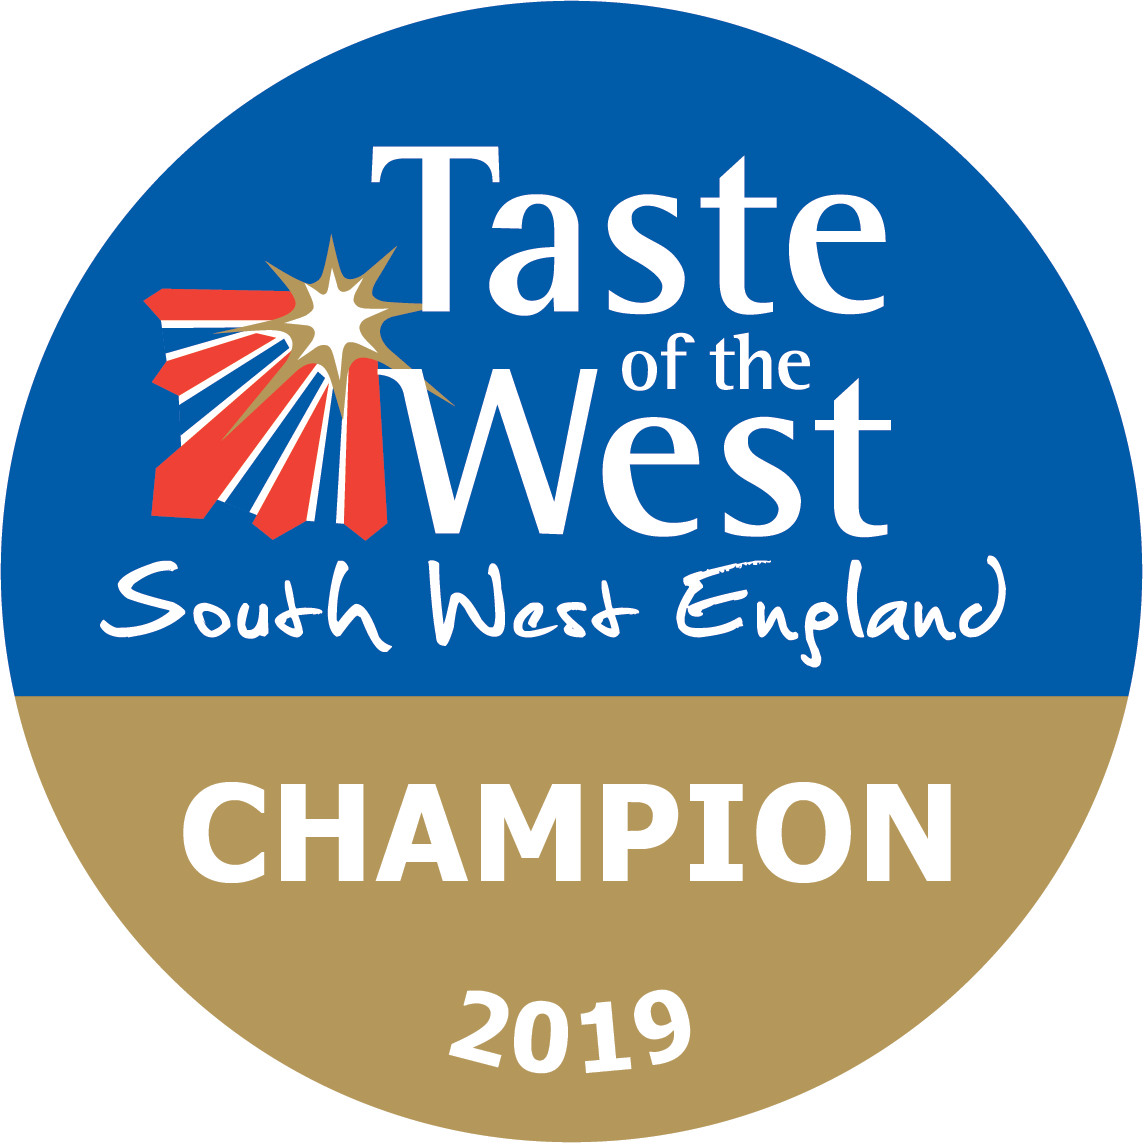 2019 Champion Taste of the West Award